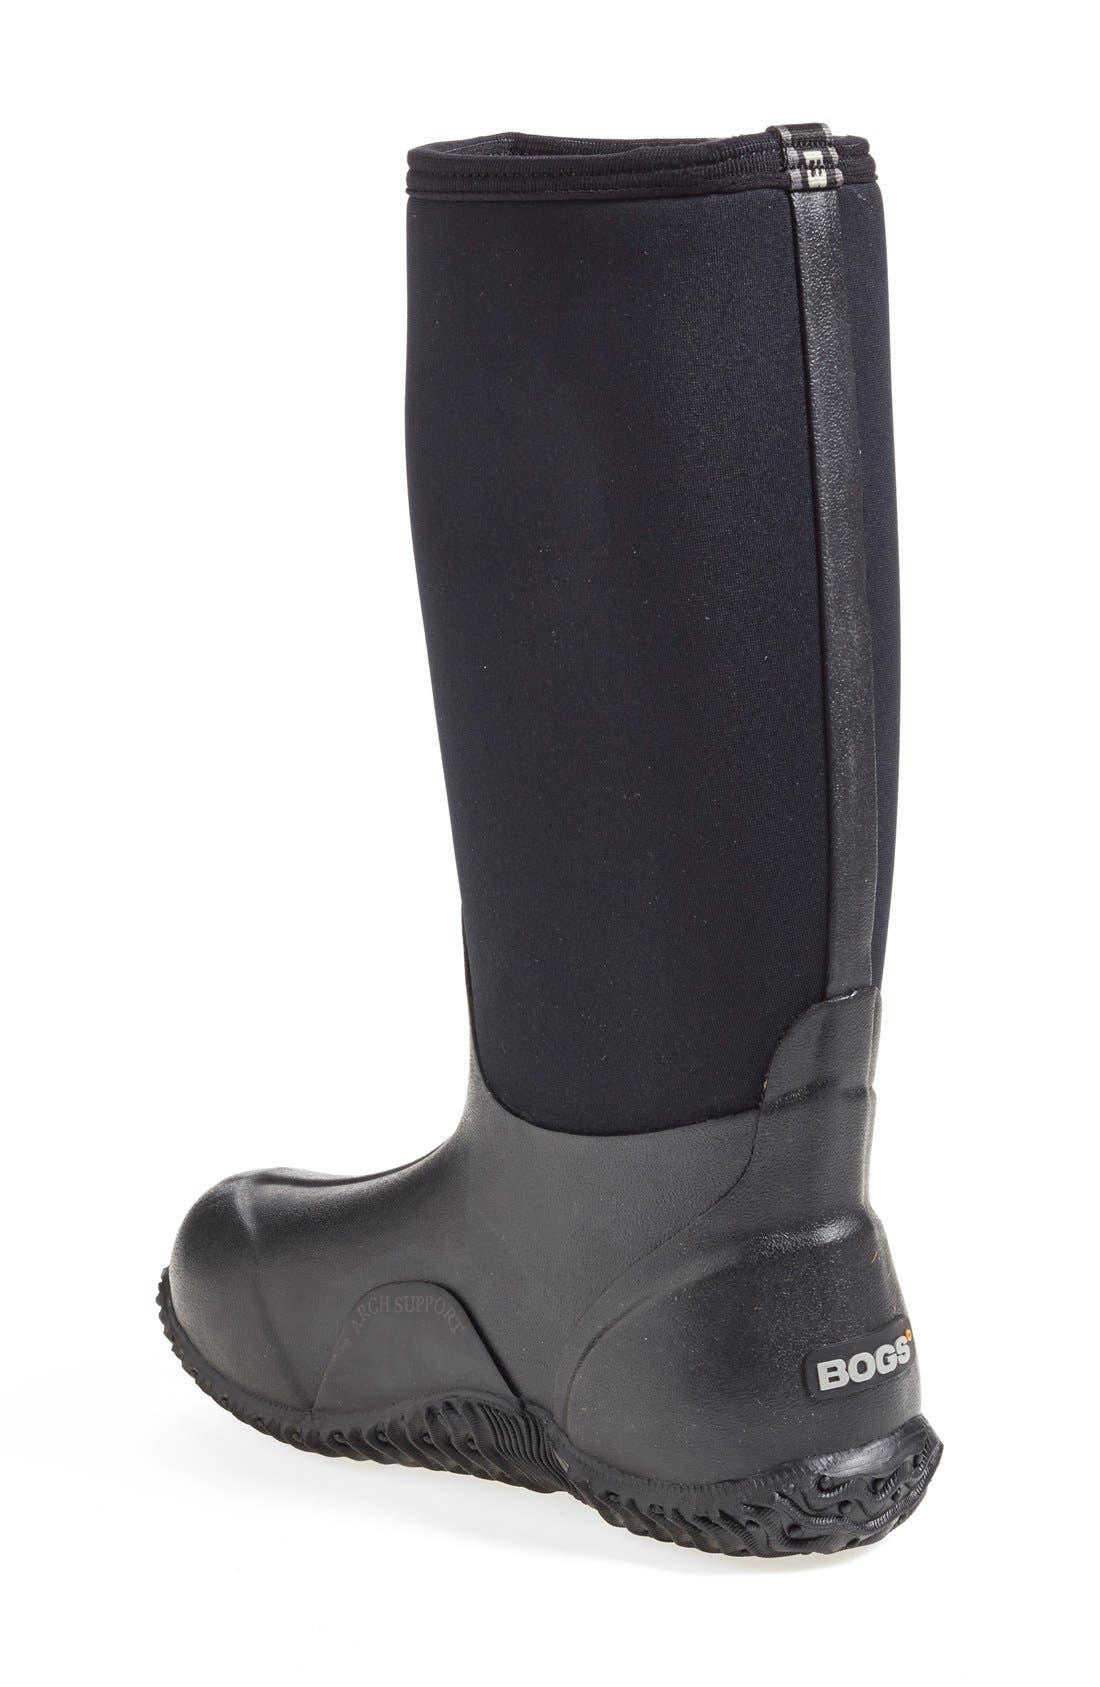 Alternate Image 2  - Bogs 'Classic' High Waterproof Snow Boot (Women)